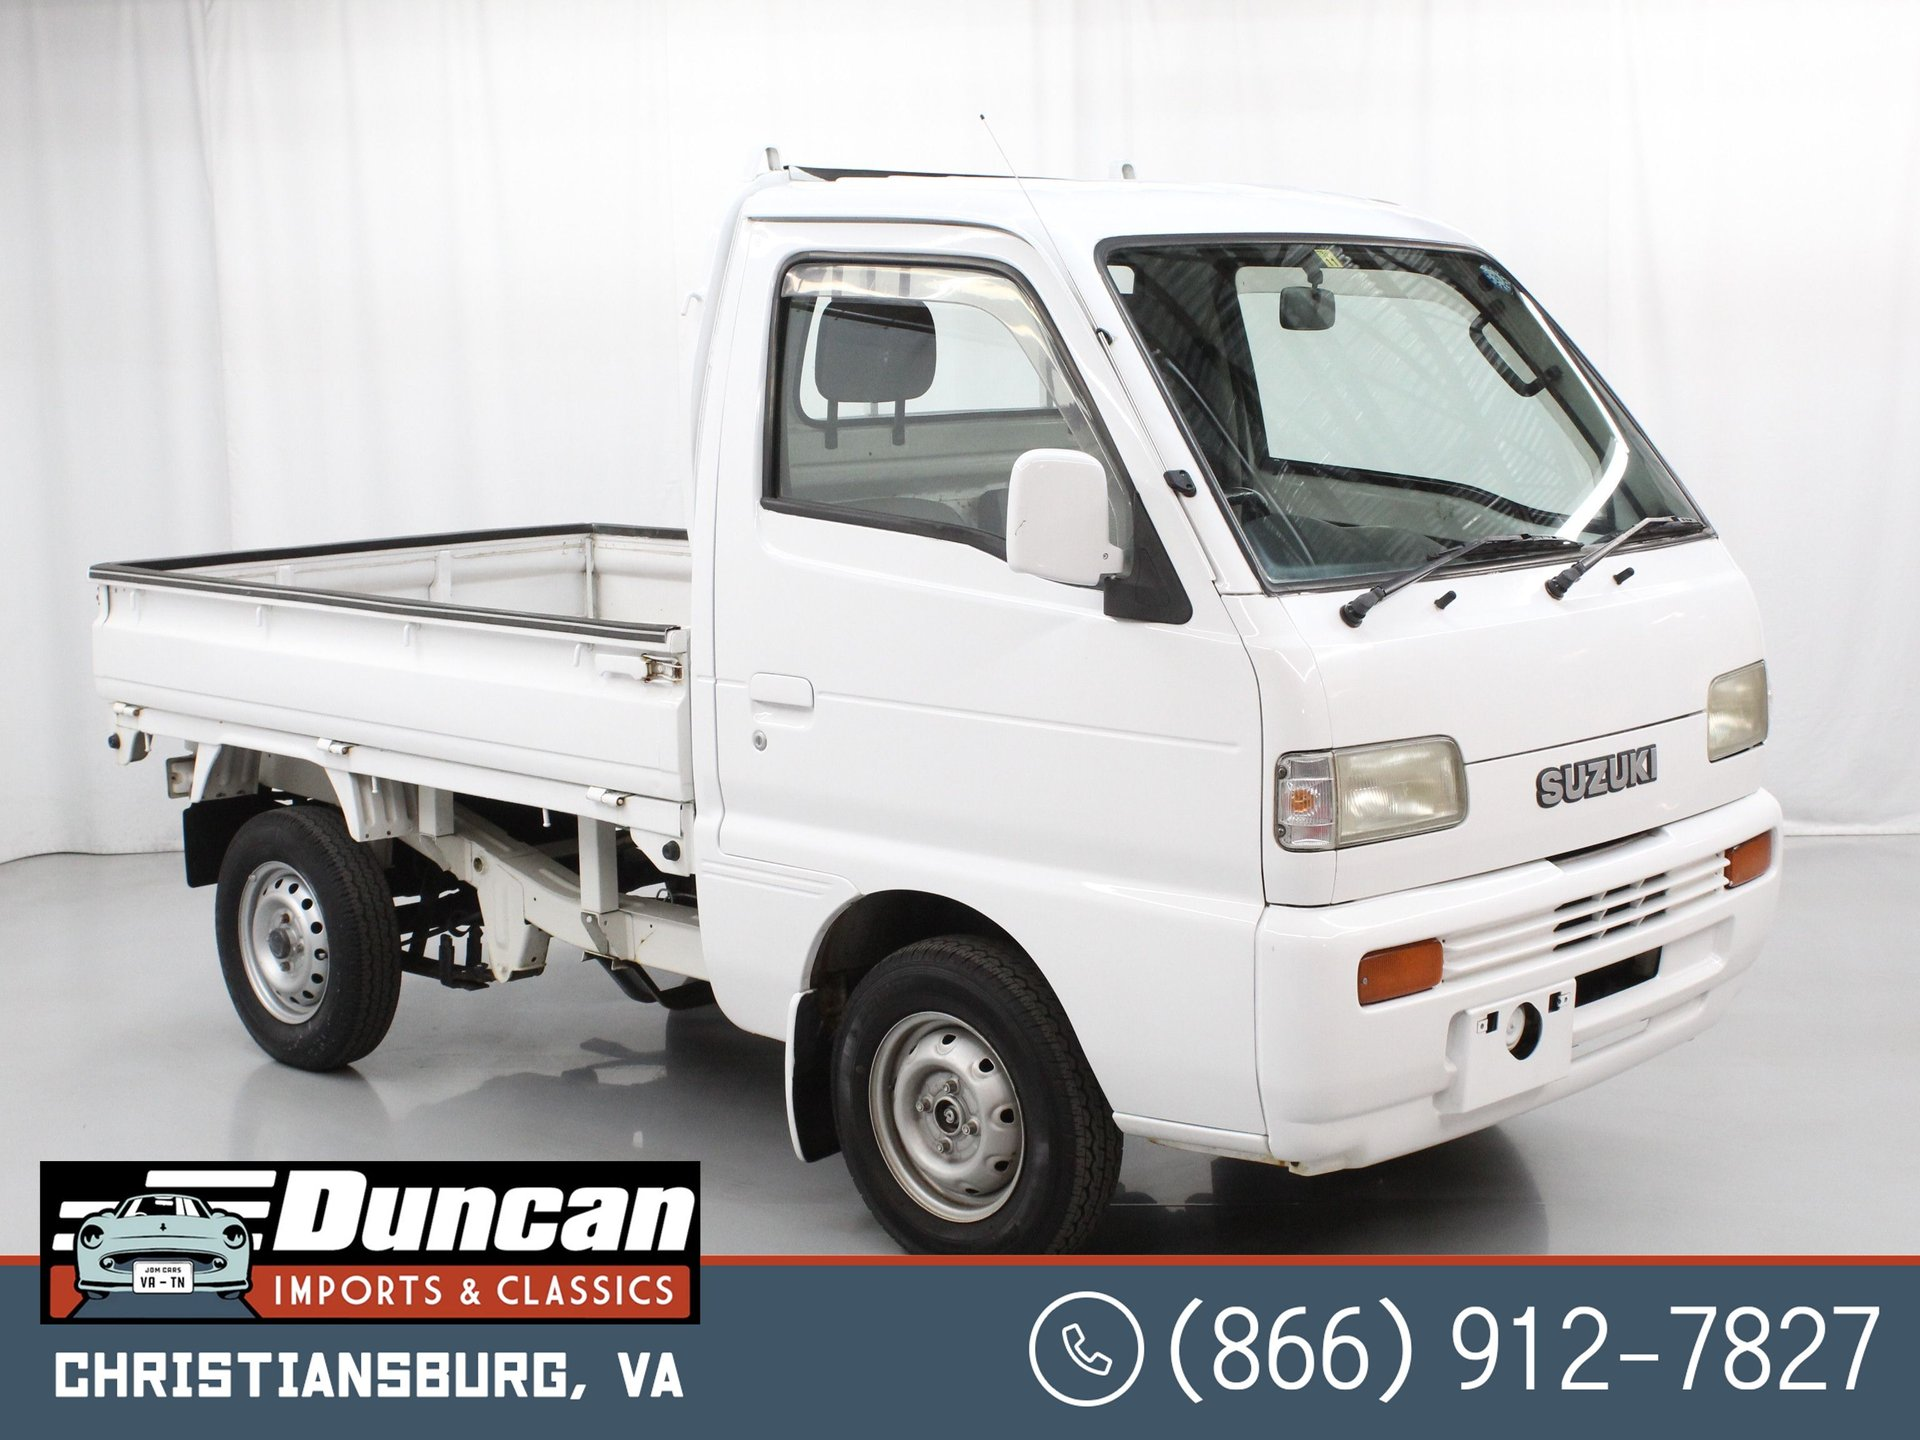 1996 suzuki carry dump bed